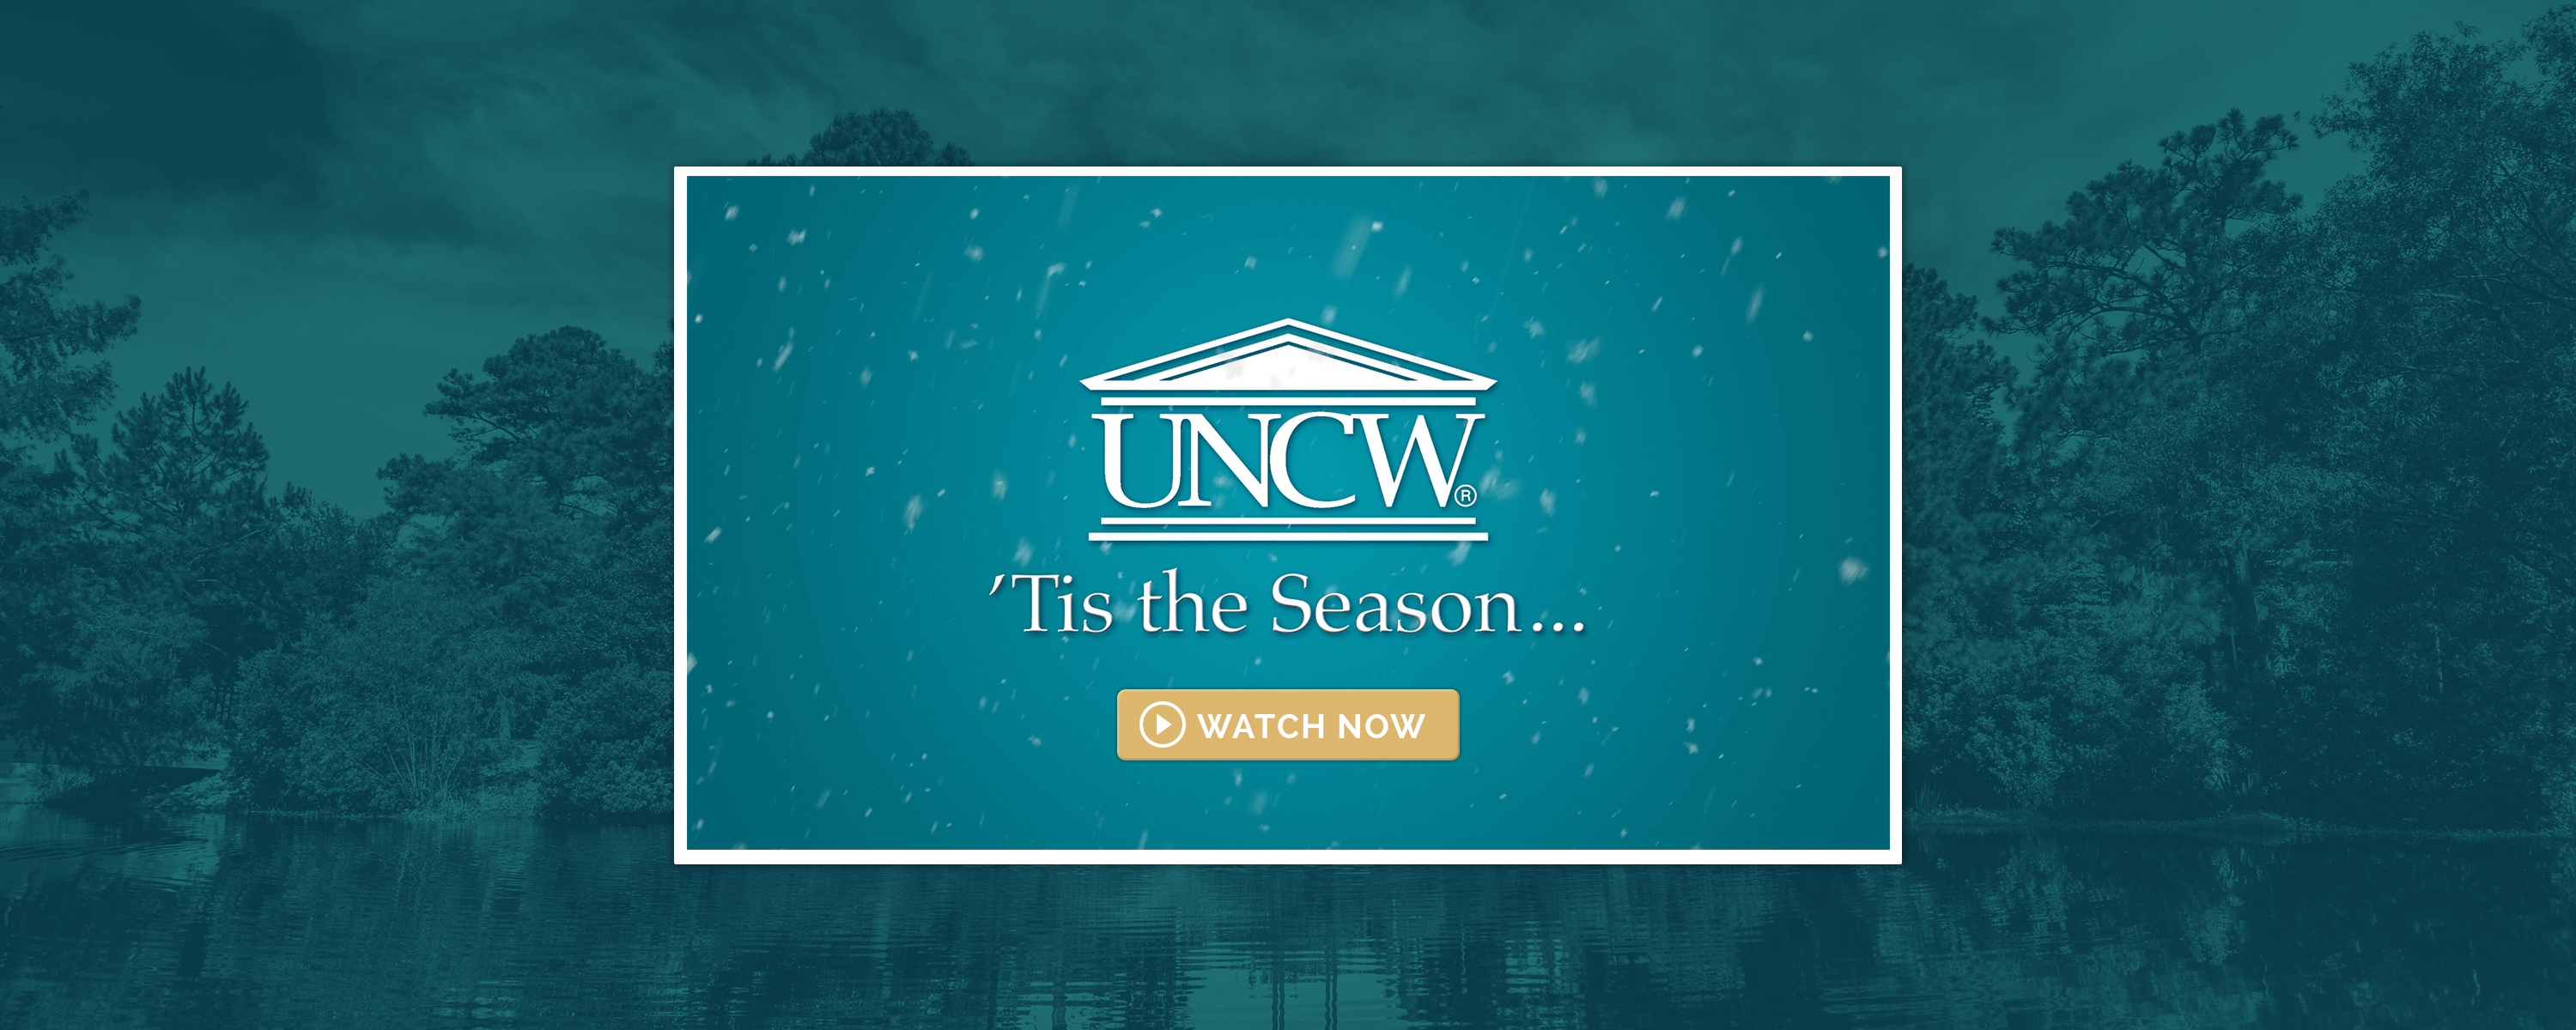 UNCW Holiday card video